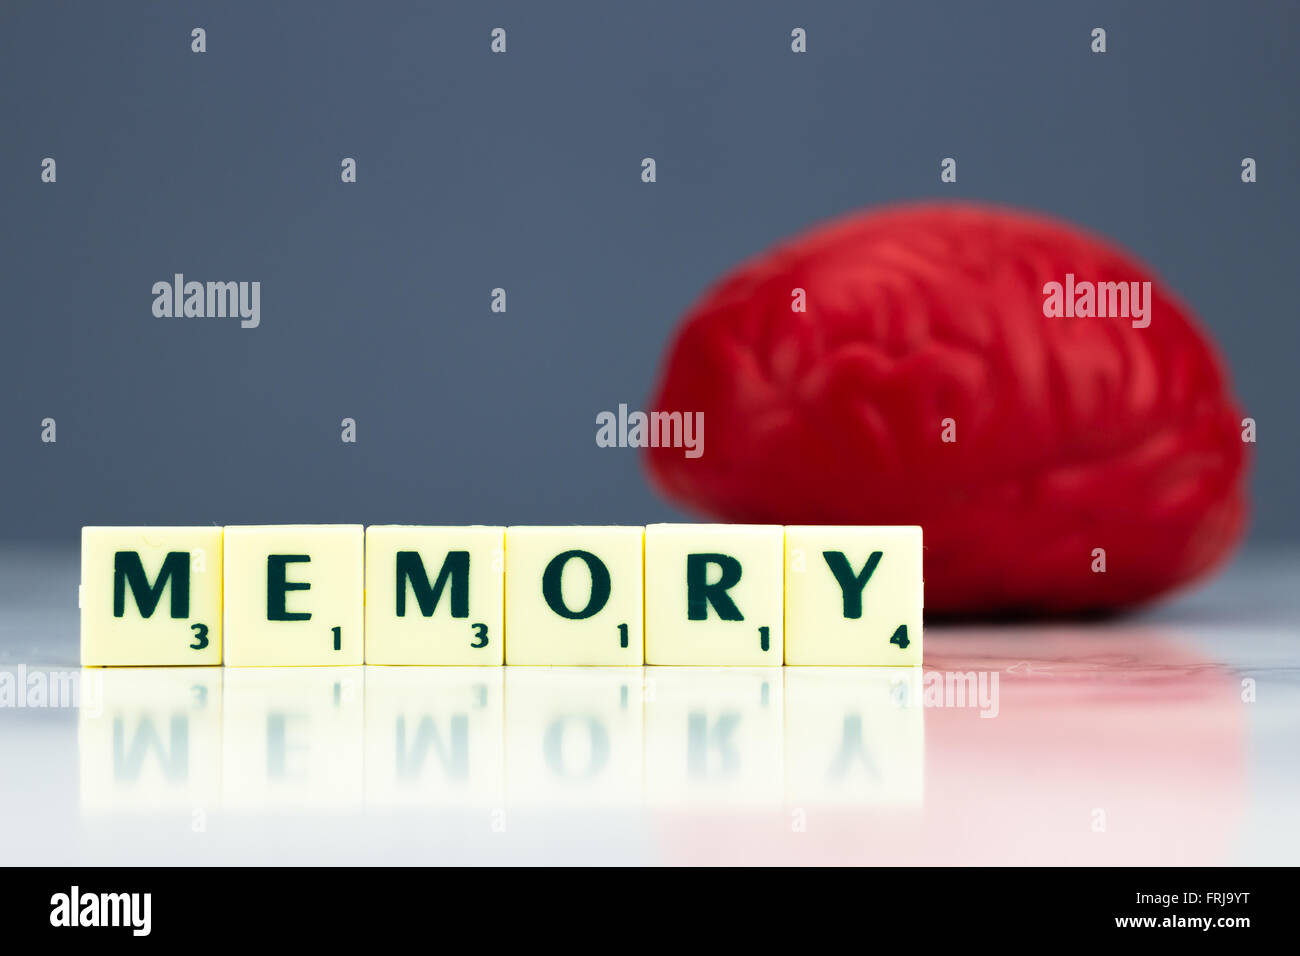 Red brain with memory sign on dark background - Stock Image